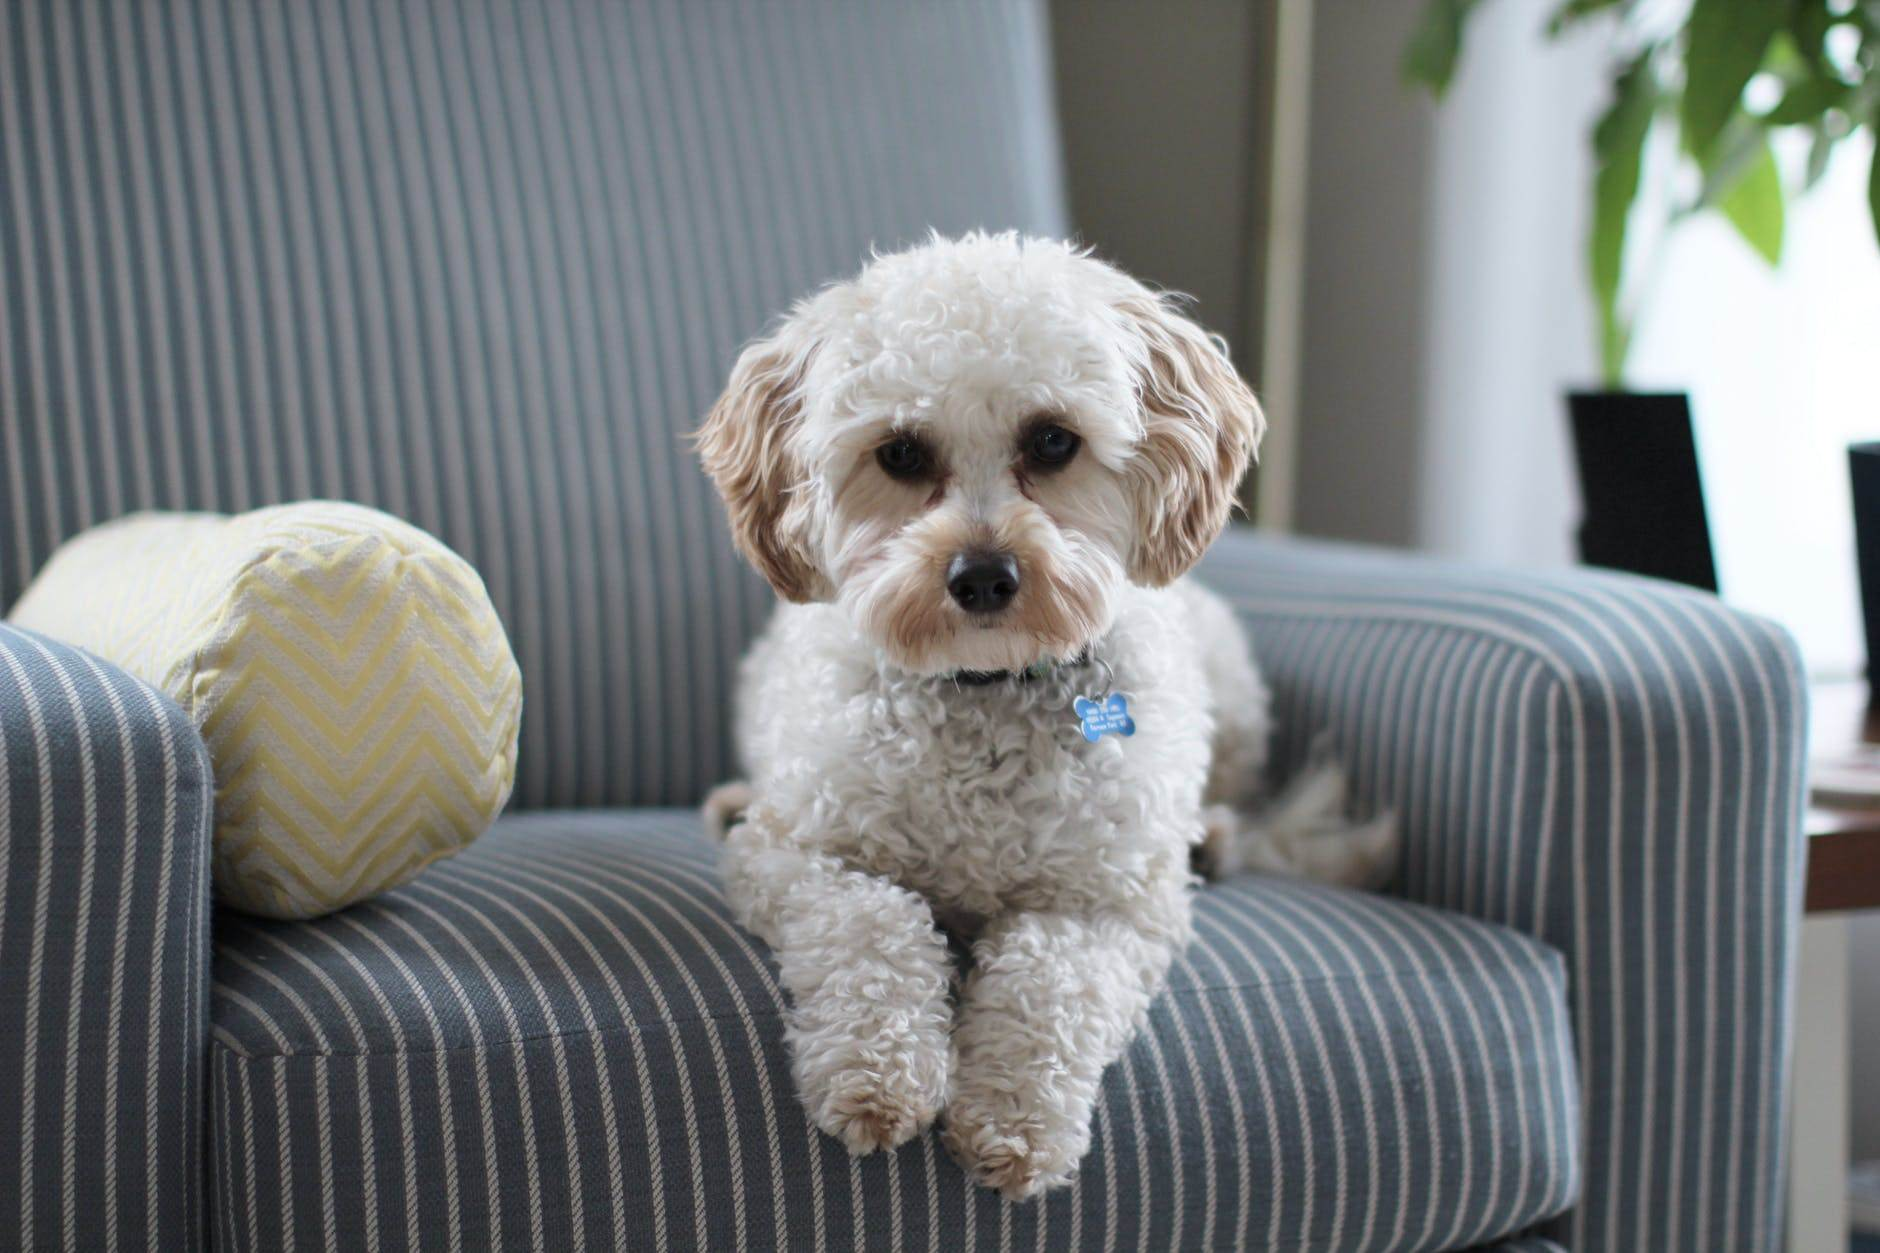 Dog Proofing Your Home: 7 Best Ways to Keep Your Dog Safe